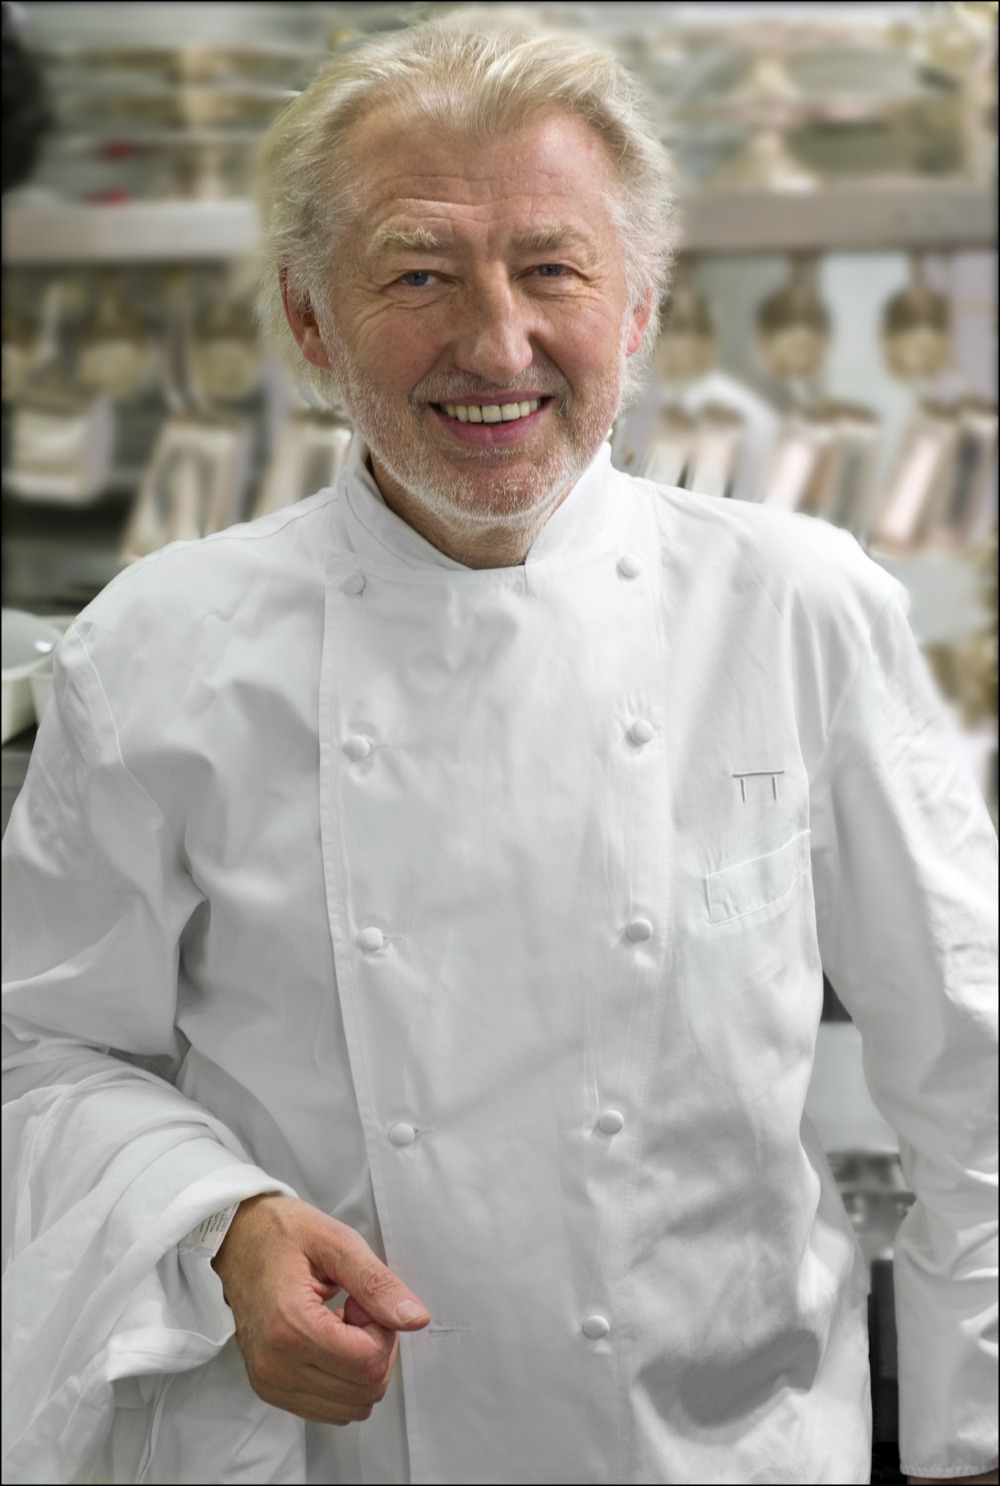 Pierre Gagnaire - Los Angeles Food Wine